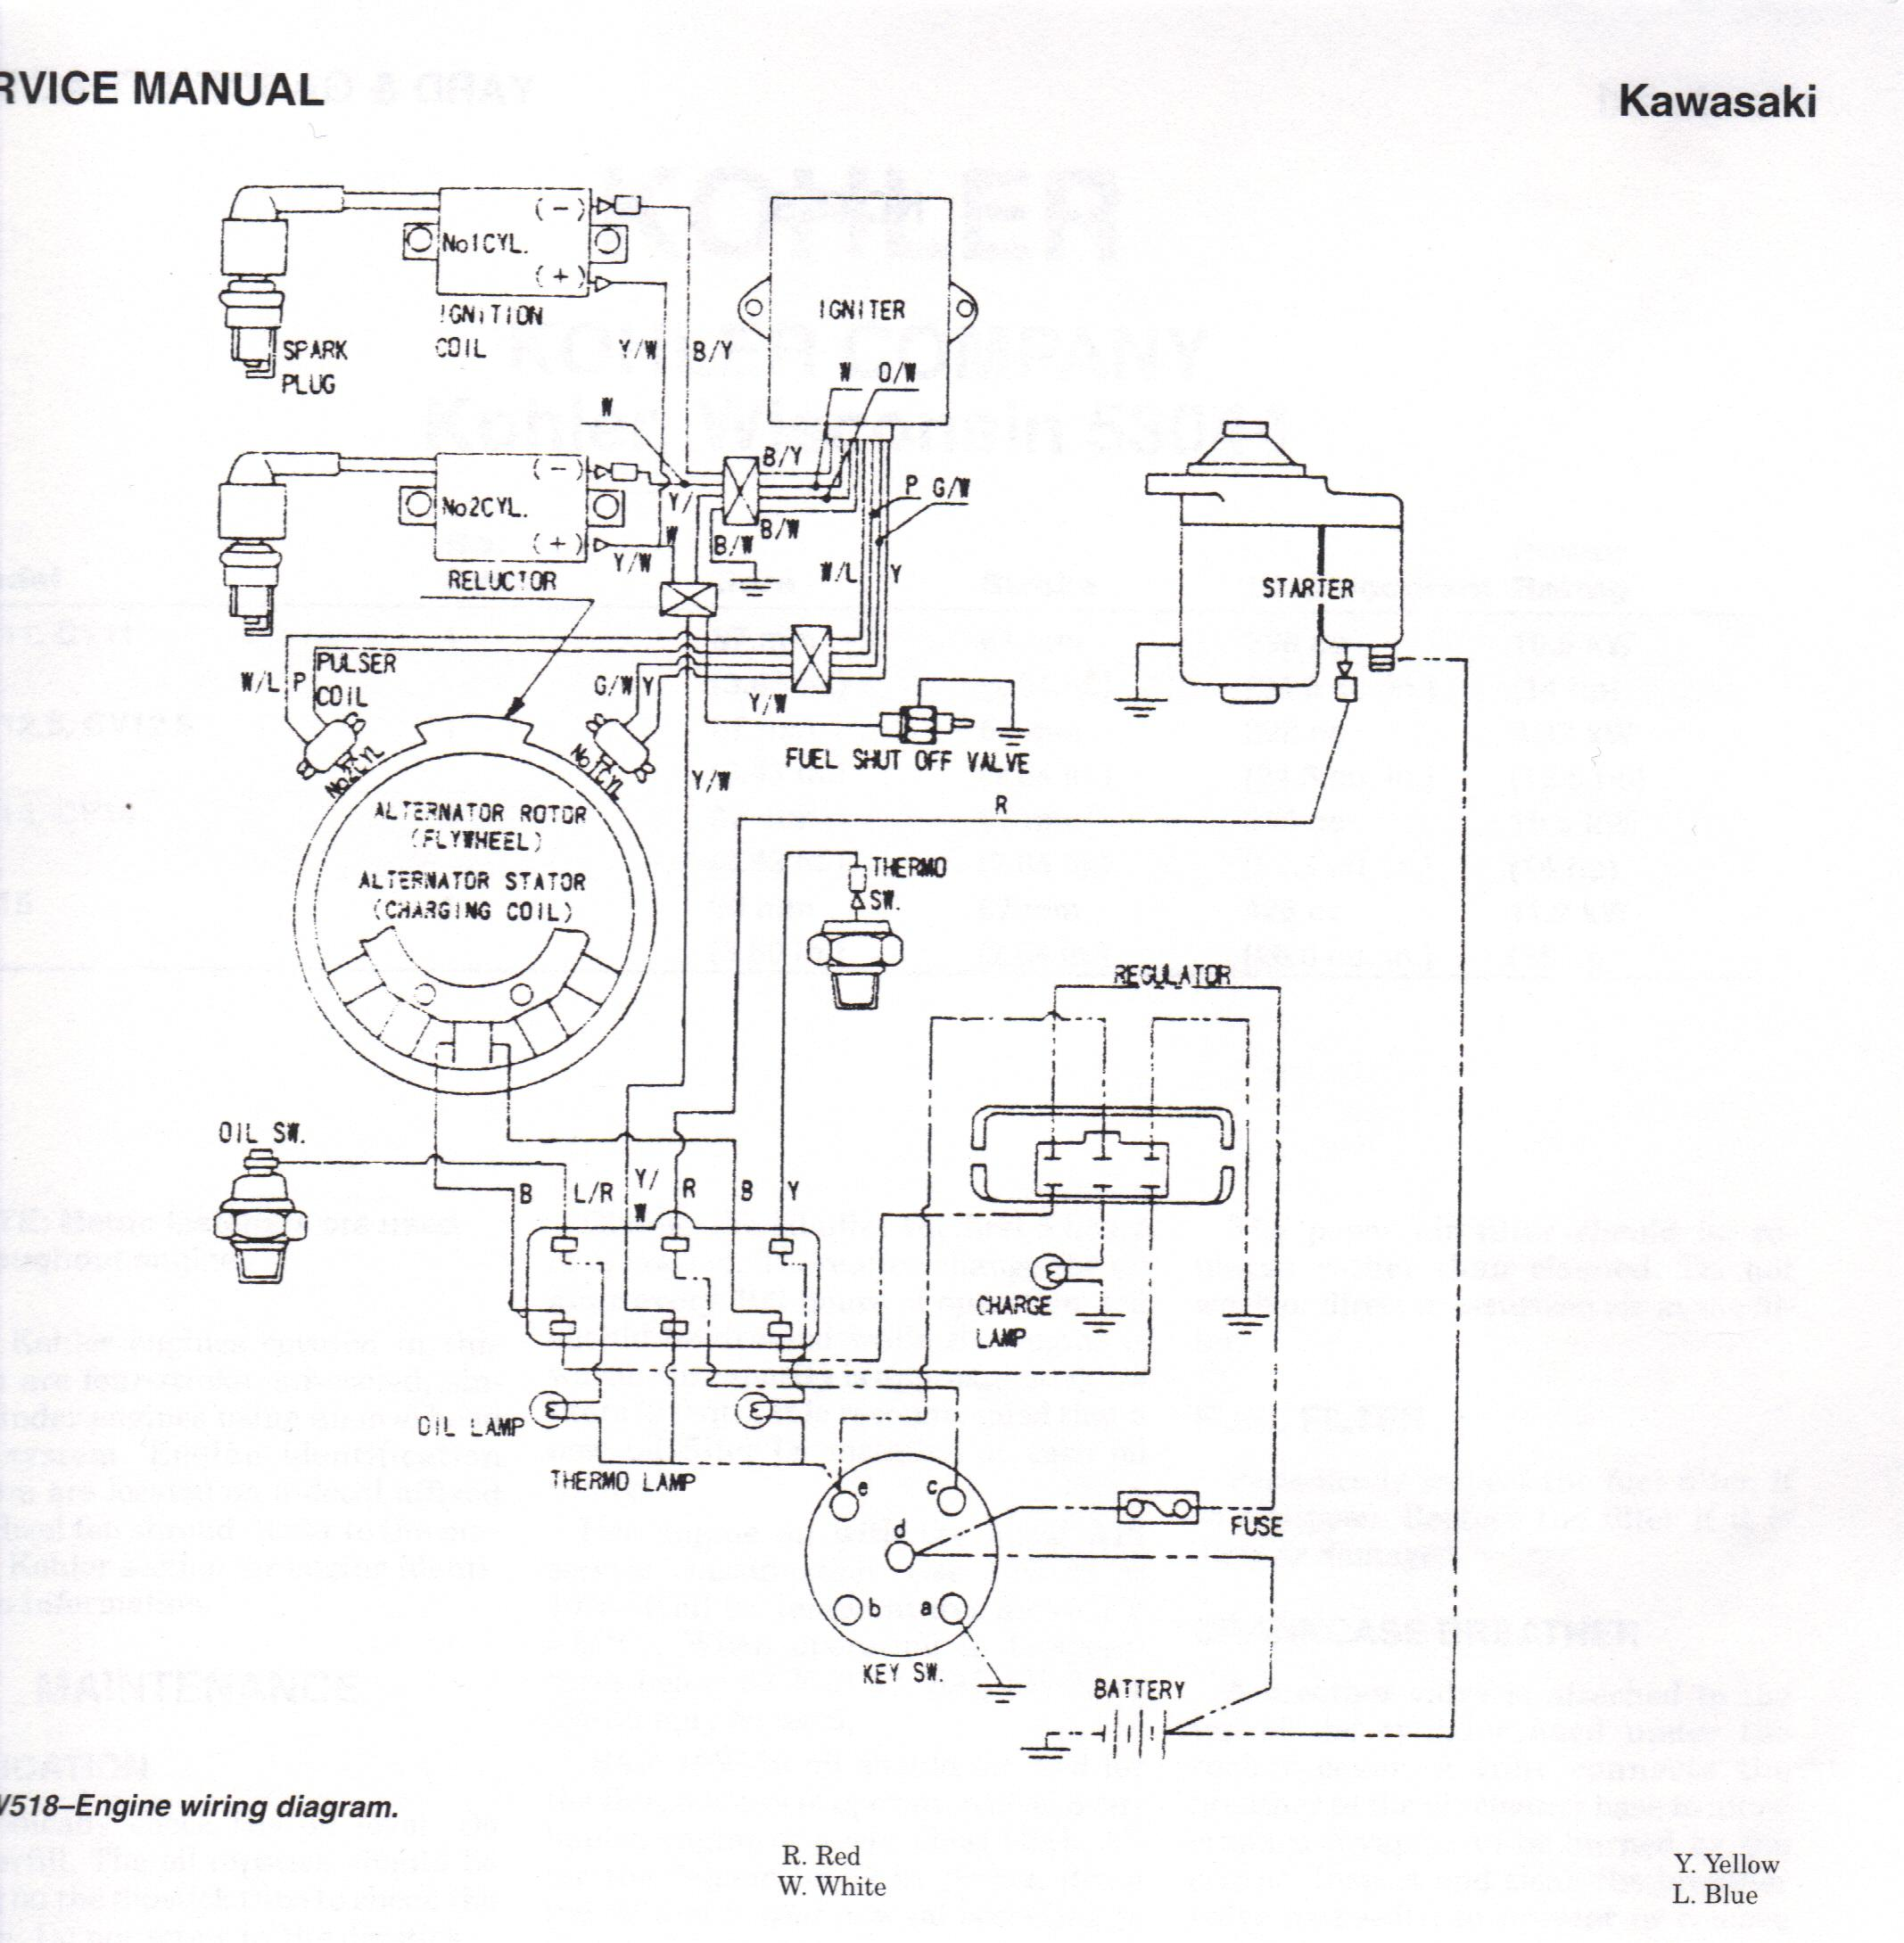 John Deere Model B Engine Diagram additionally Instument Panel Wiring Diagram 1989 Ford F 250 moreover 79gwx Need Find Info Electrical Schematic John Deere 345 moreover 36004 Wiring Diagram Jd214 together with Peg Perego Thomas Tank Wiring Diagram. on wiring diagram for john deere gator hpx